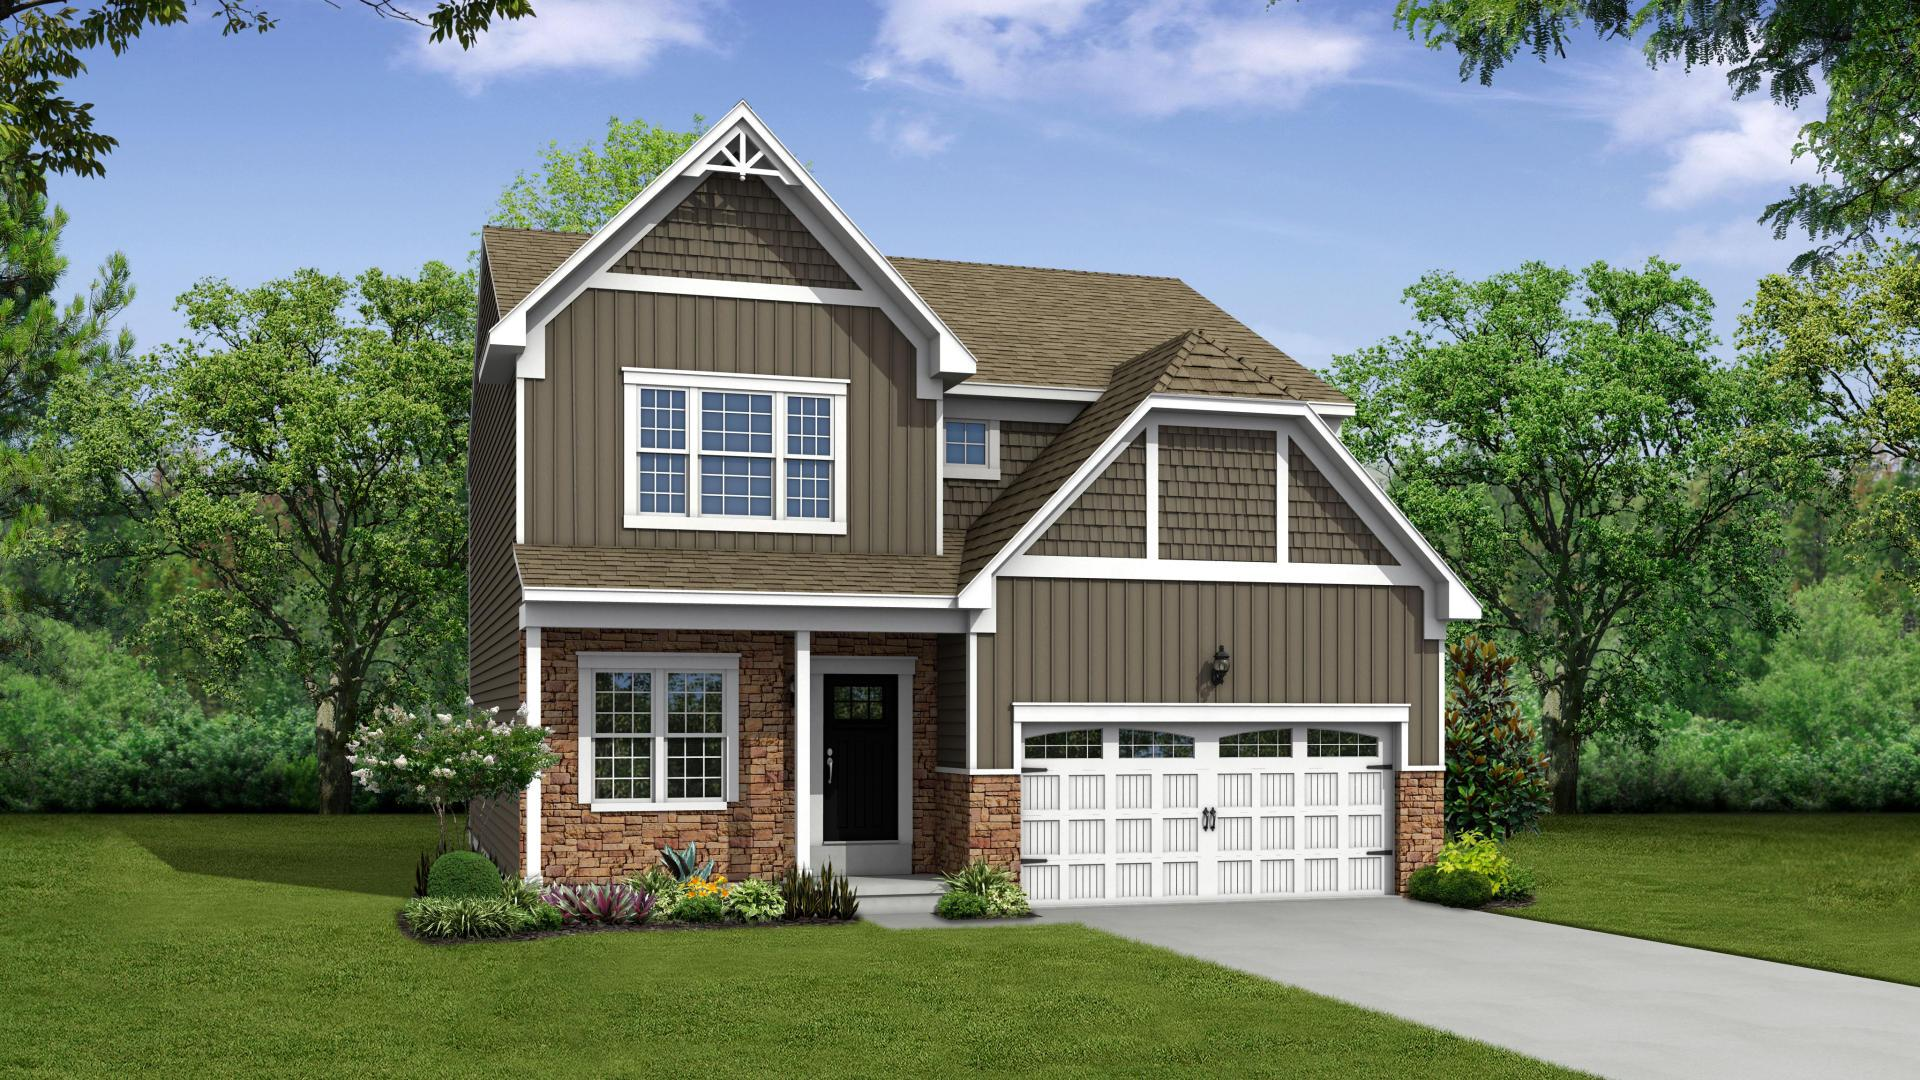 Exterior:Elevation: A Opt New England Stone Front, Full Porch, and Garage Door